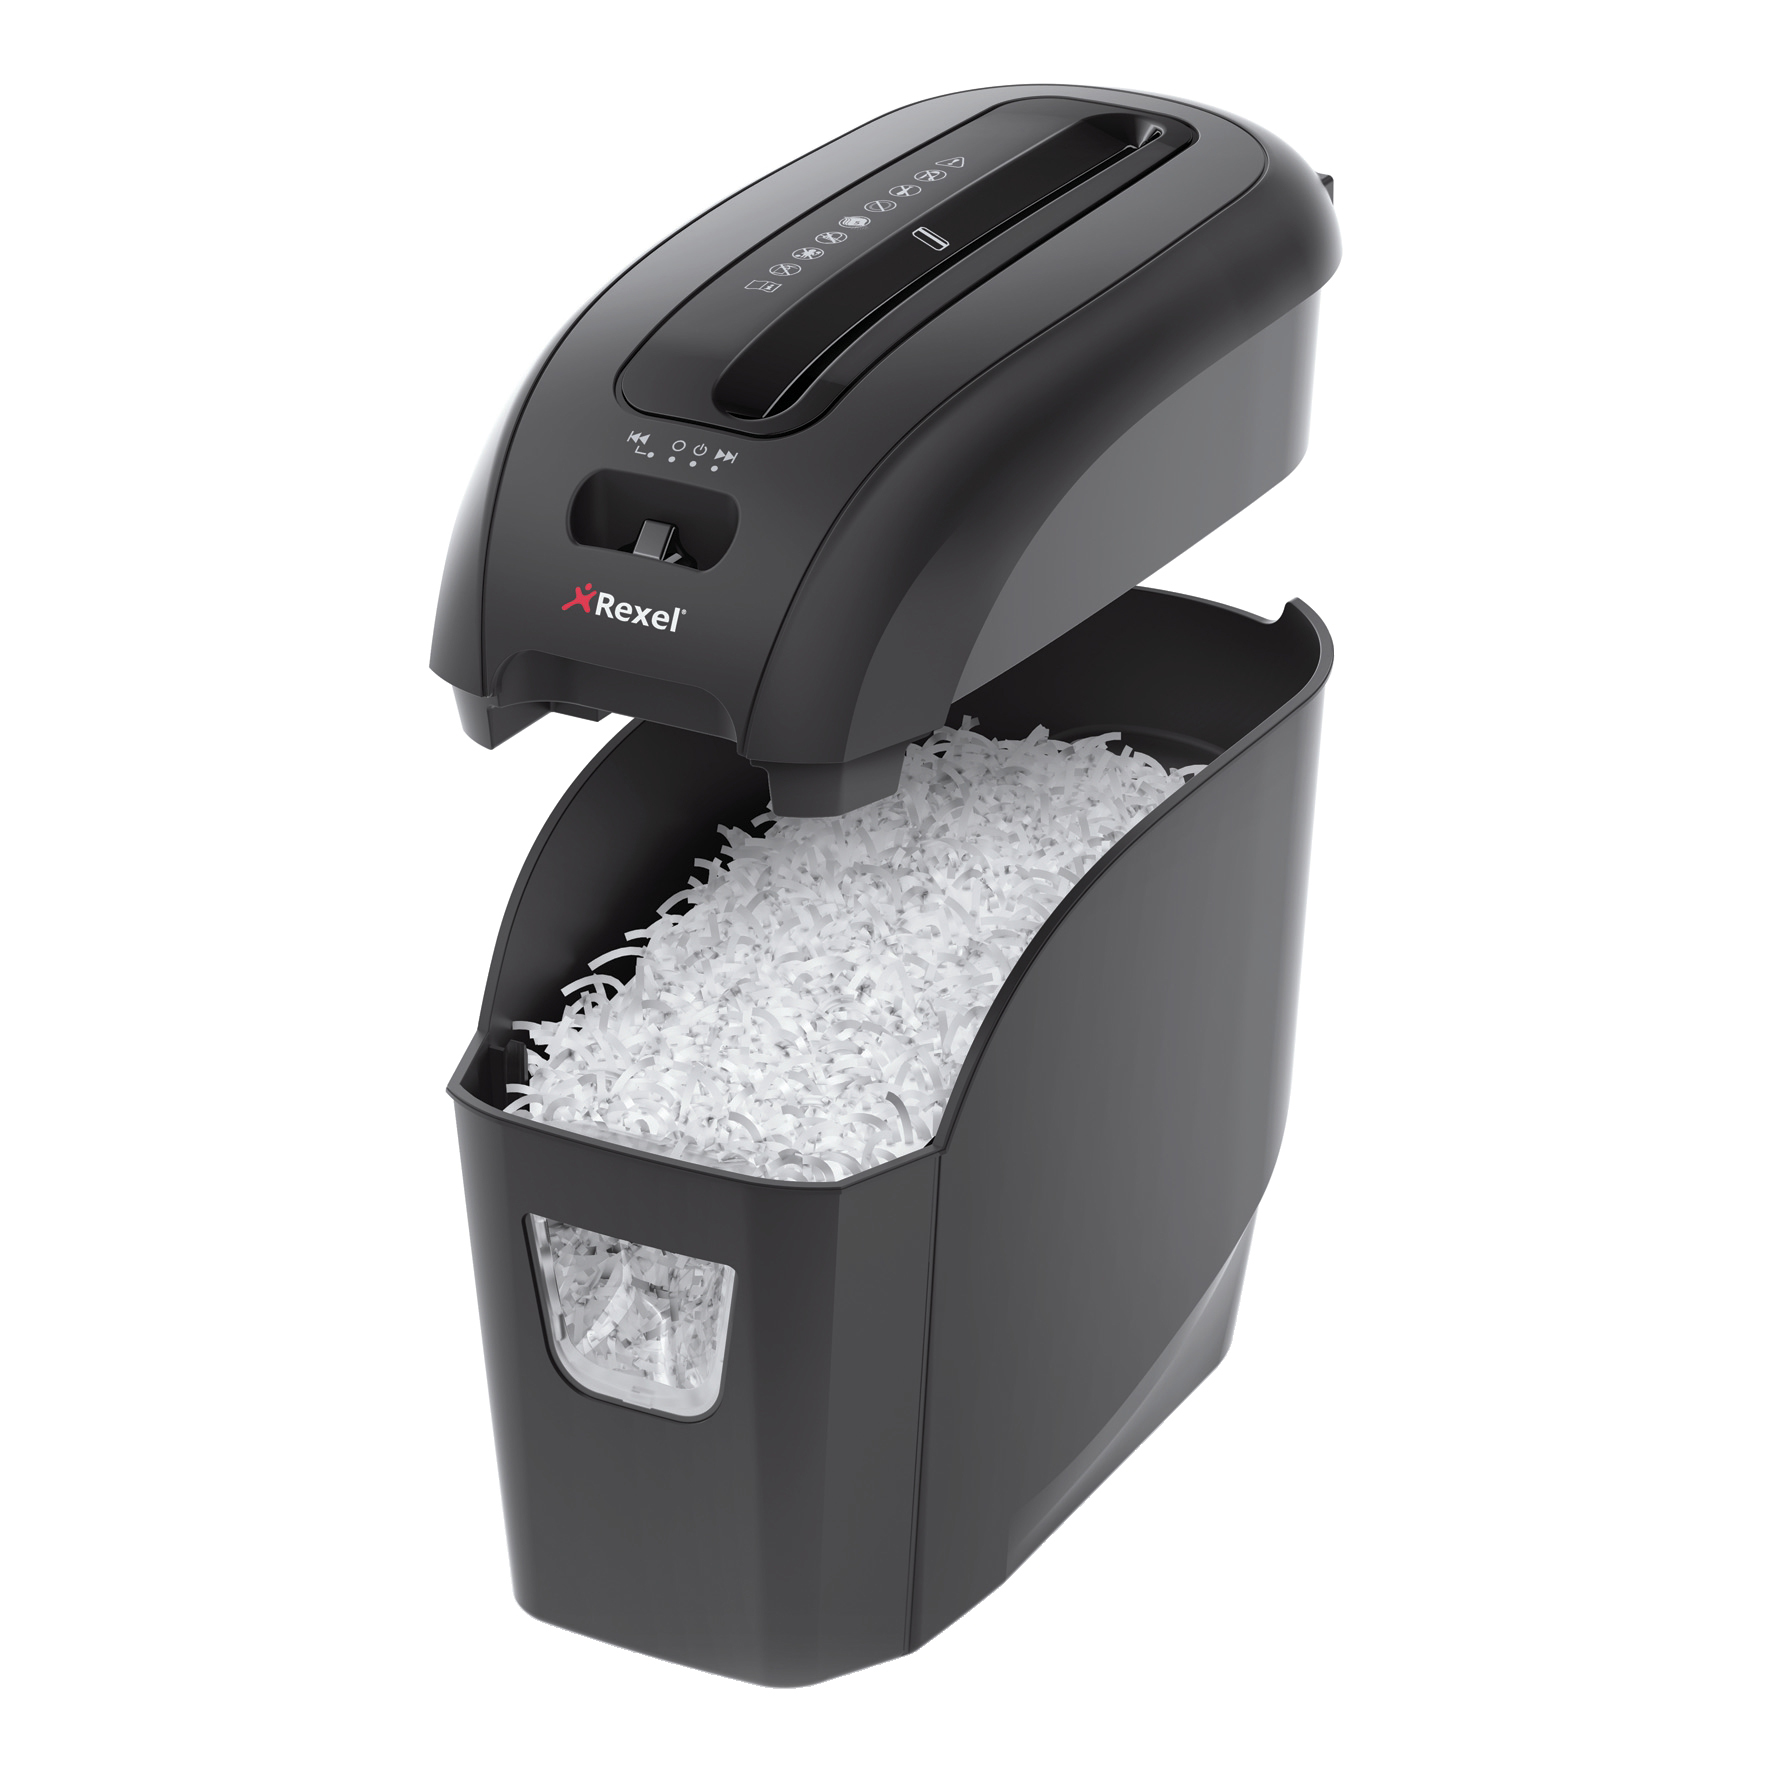 Rexel Prostyle Plus 5 Shredder Cross-cut P-4 7.5 Litres Ref 2104005